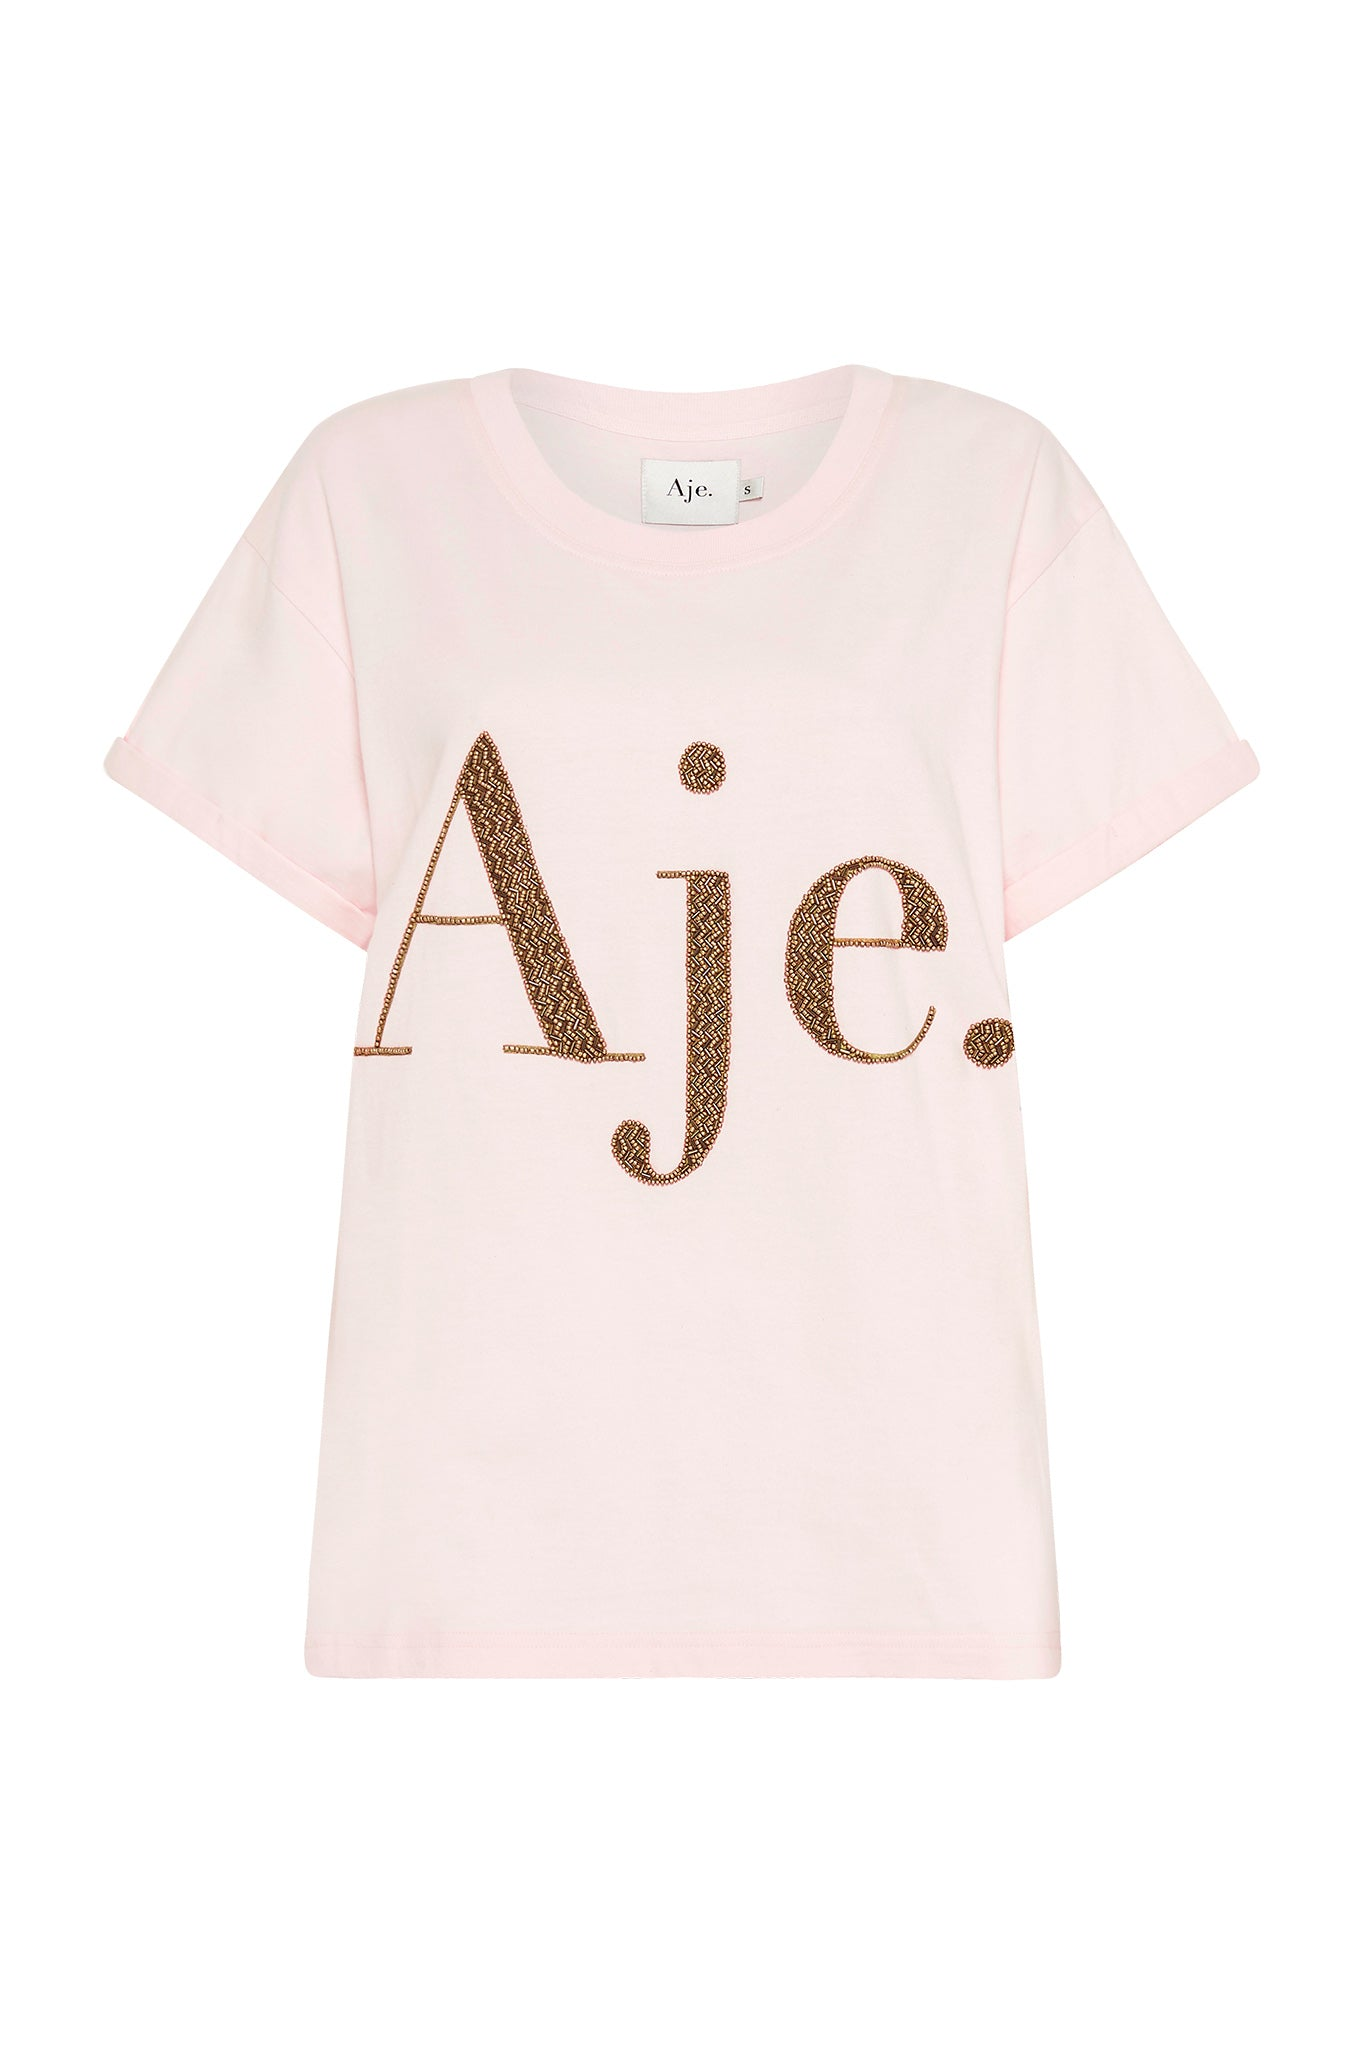 Aje Metallic Logo Tee Product View